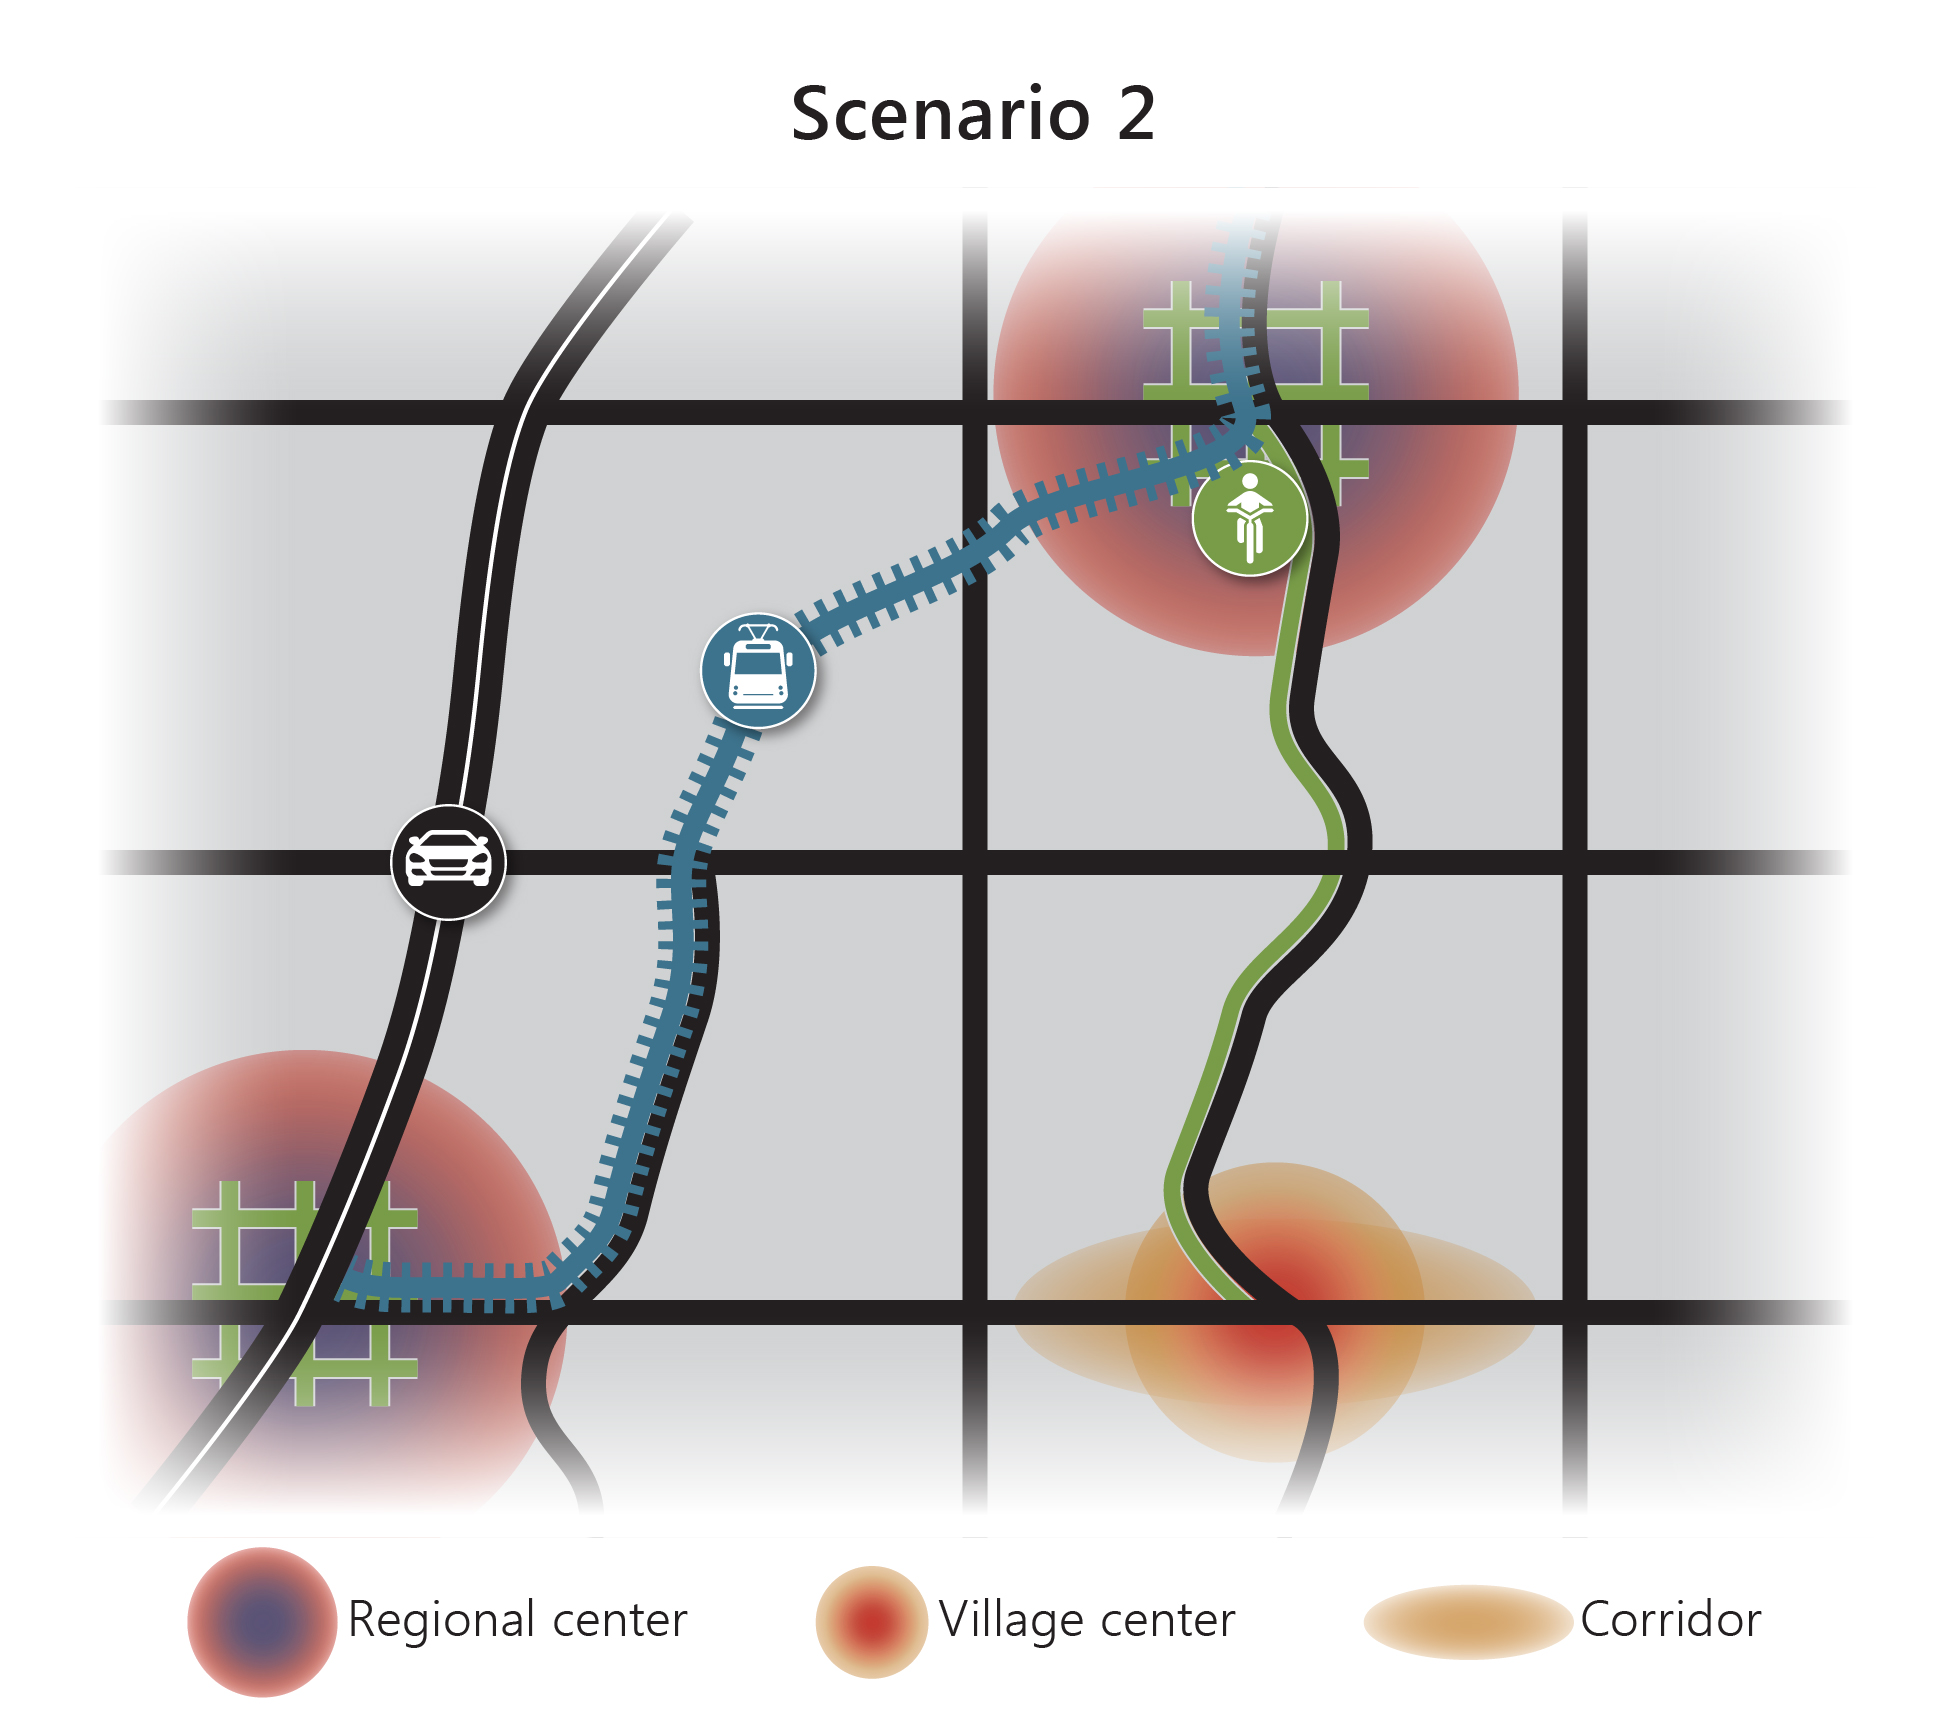 Simple Graphic Depicting Scenario 2, Which Focuses Growth In Large Regional Centers And Expands Local Streets And Regional Rail.